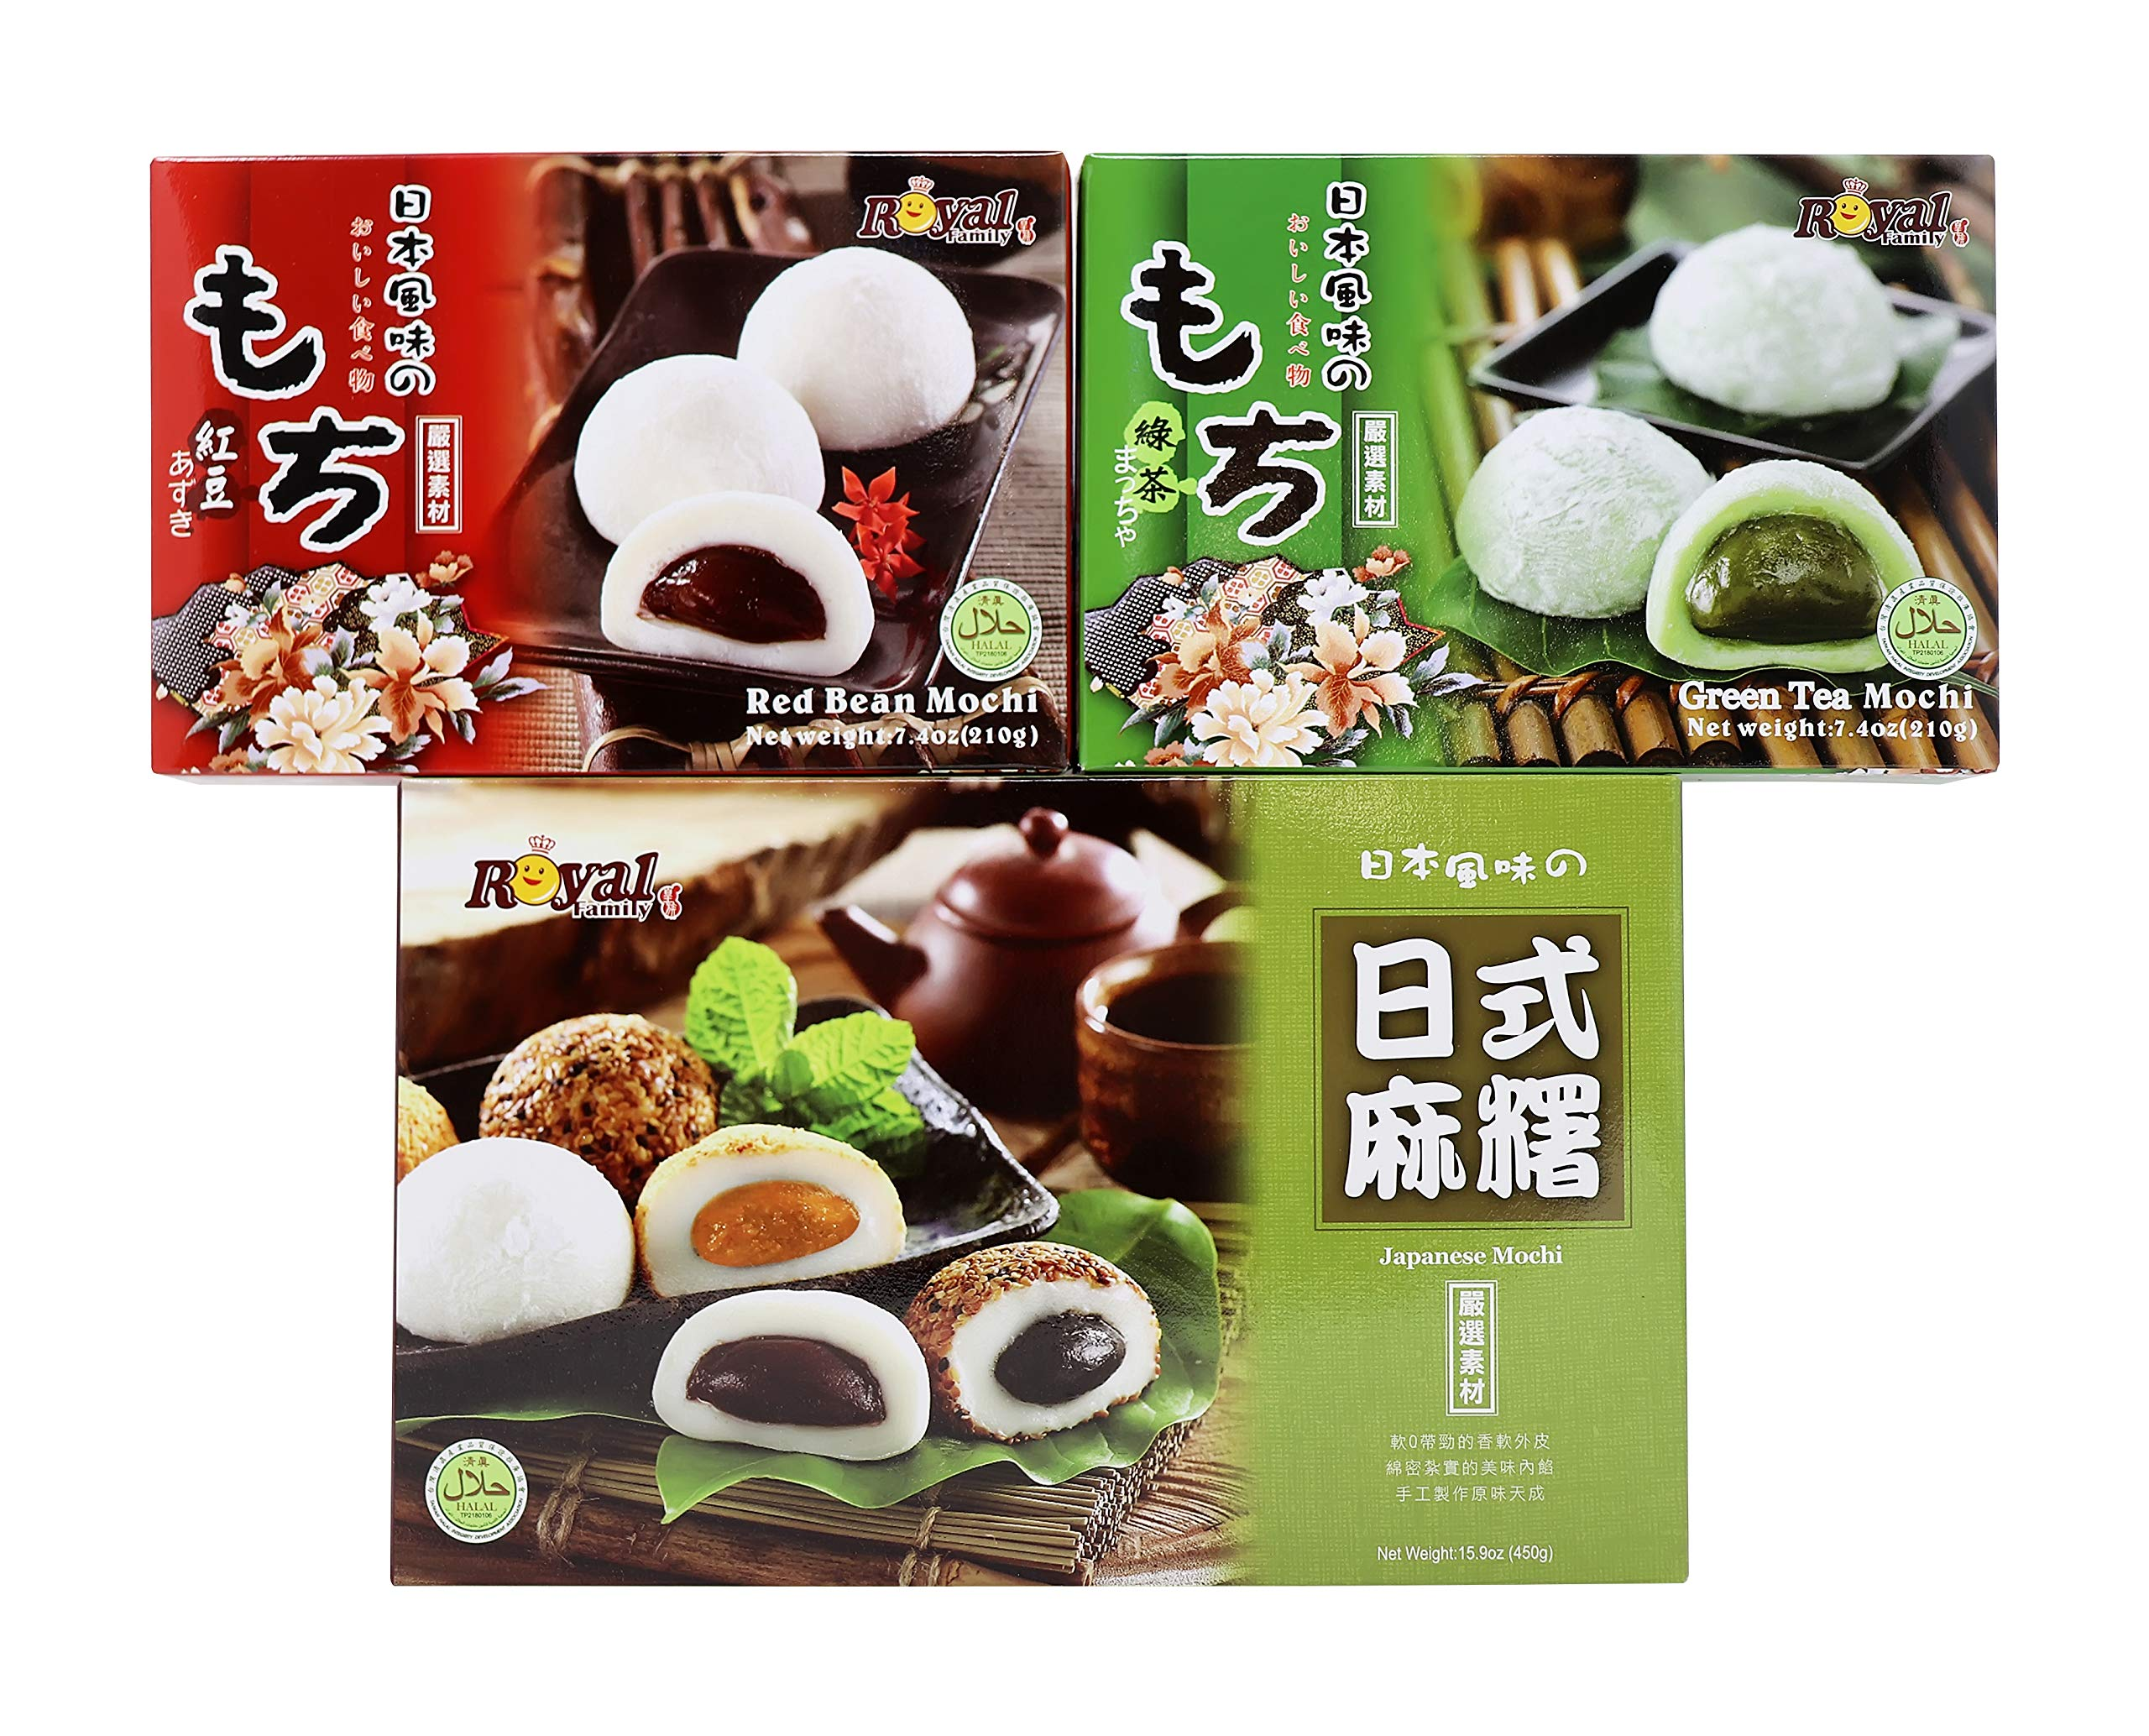 Royal Family Japanese Mochi Variety Pack Red Bean Green Tea, Assorted Mochi snacks